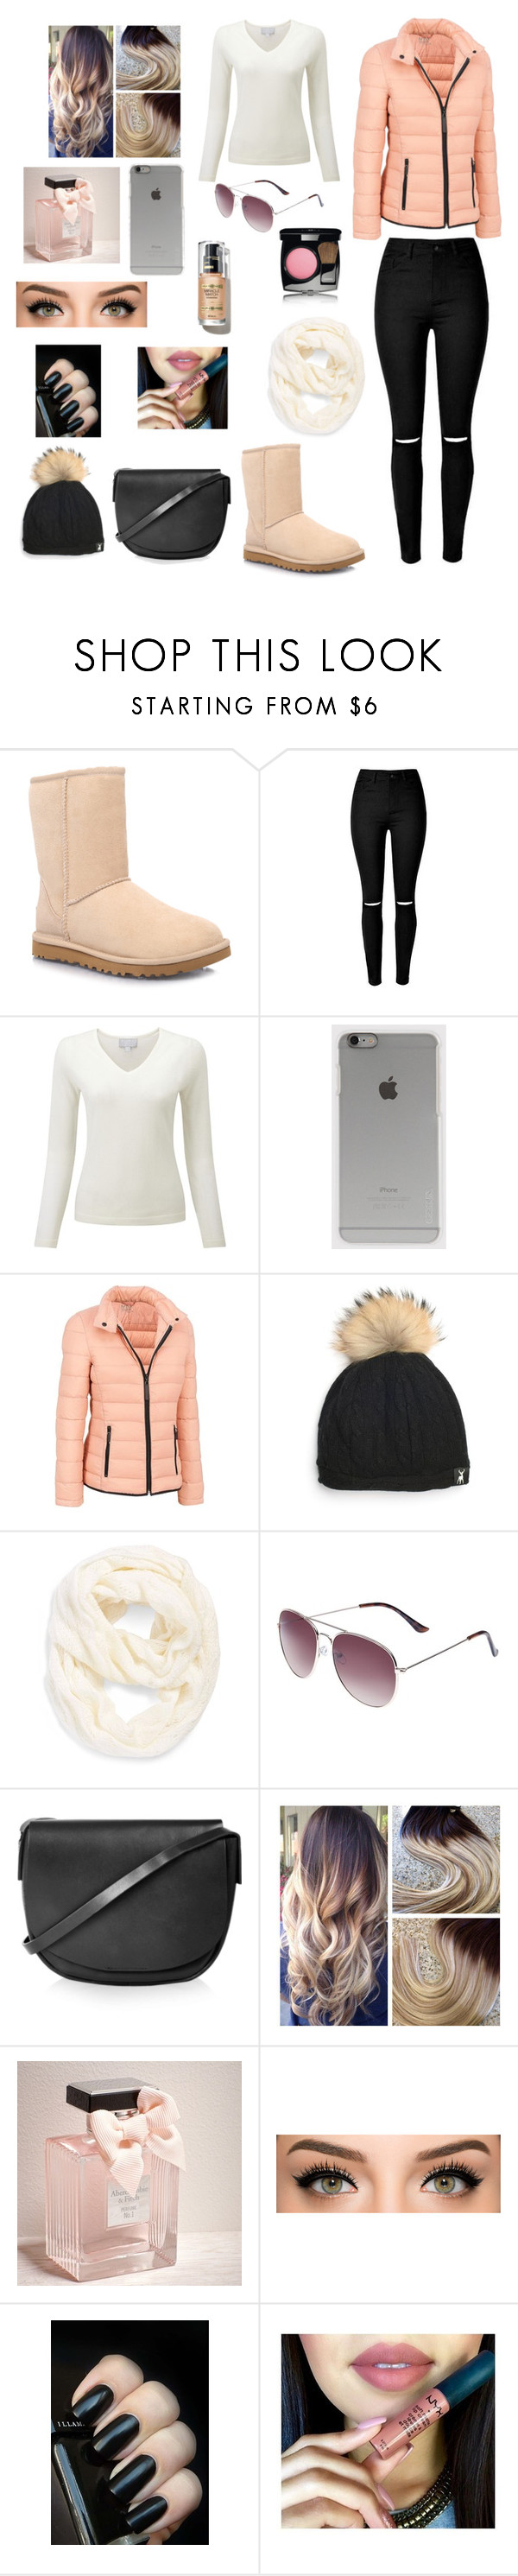 """Bez nalova."" by amela-tabakovic ❤ liked on Polyvore featuring UGG Australia, Incase, Andrew Marc, Echo, Topshop, Abercrombie & Fitch, Chanel, mens, men and men's wear"